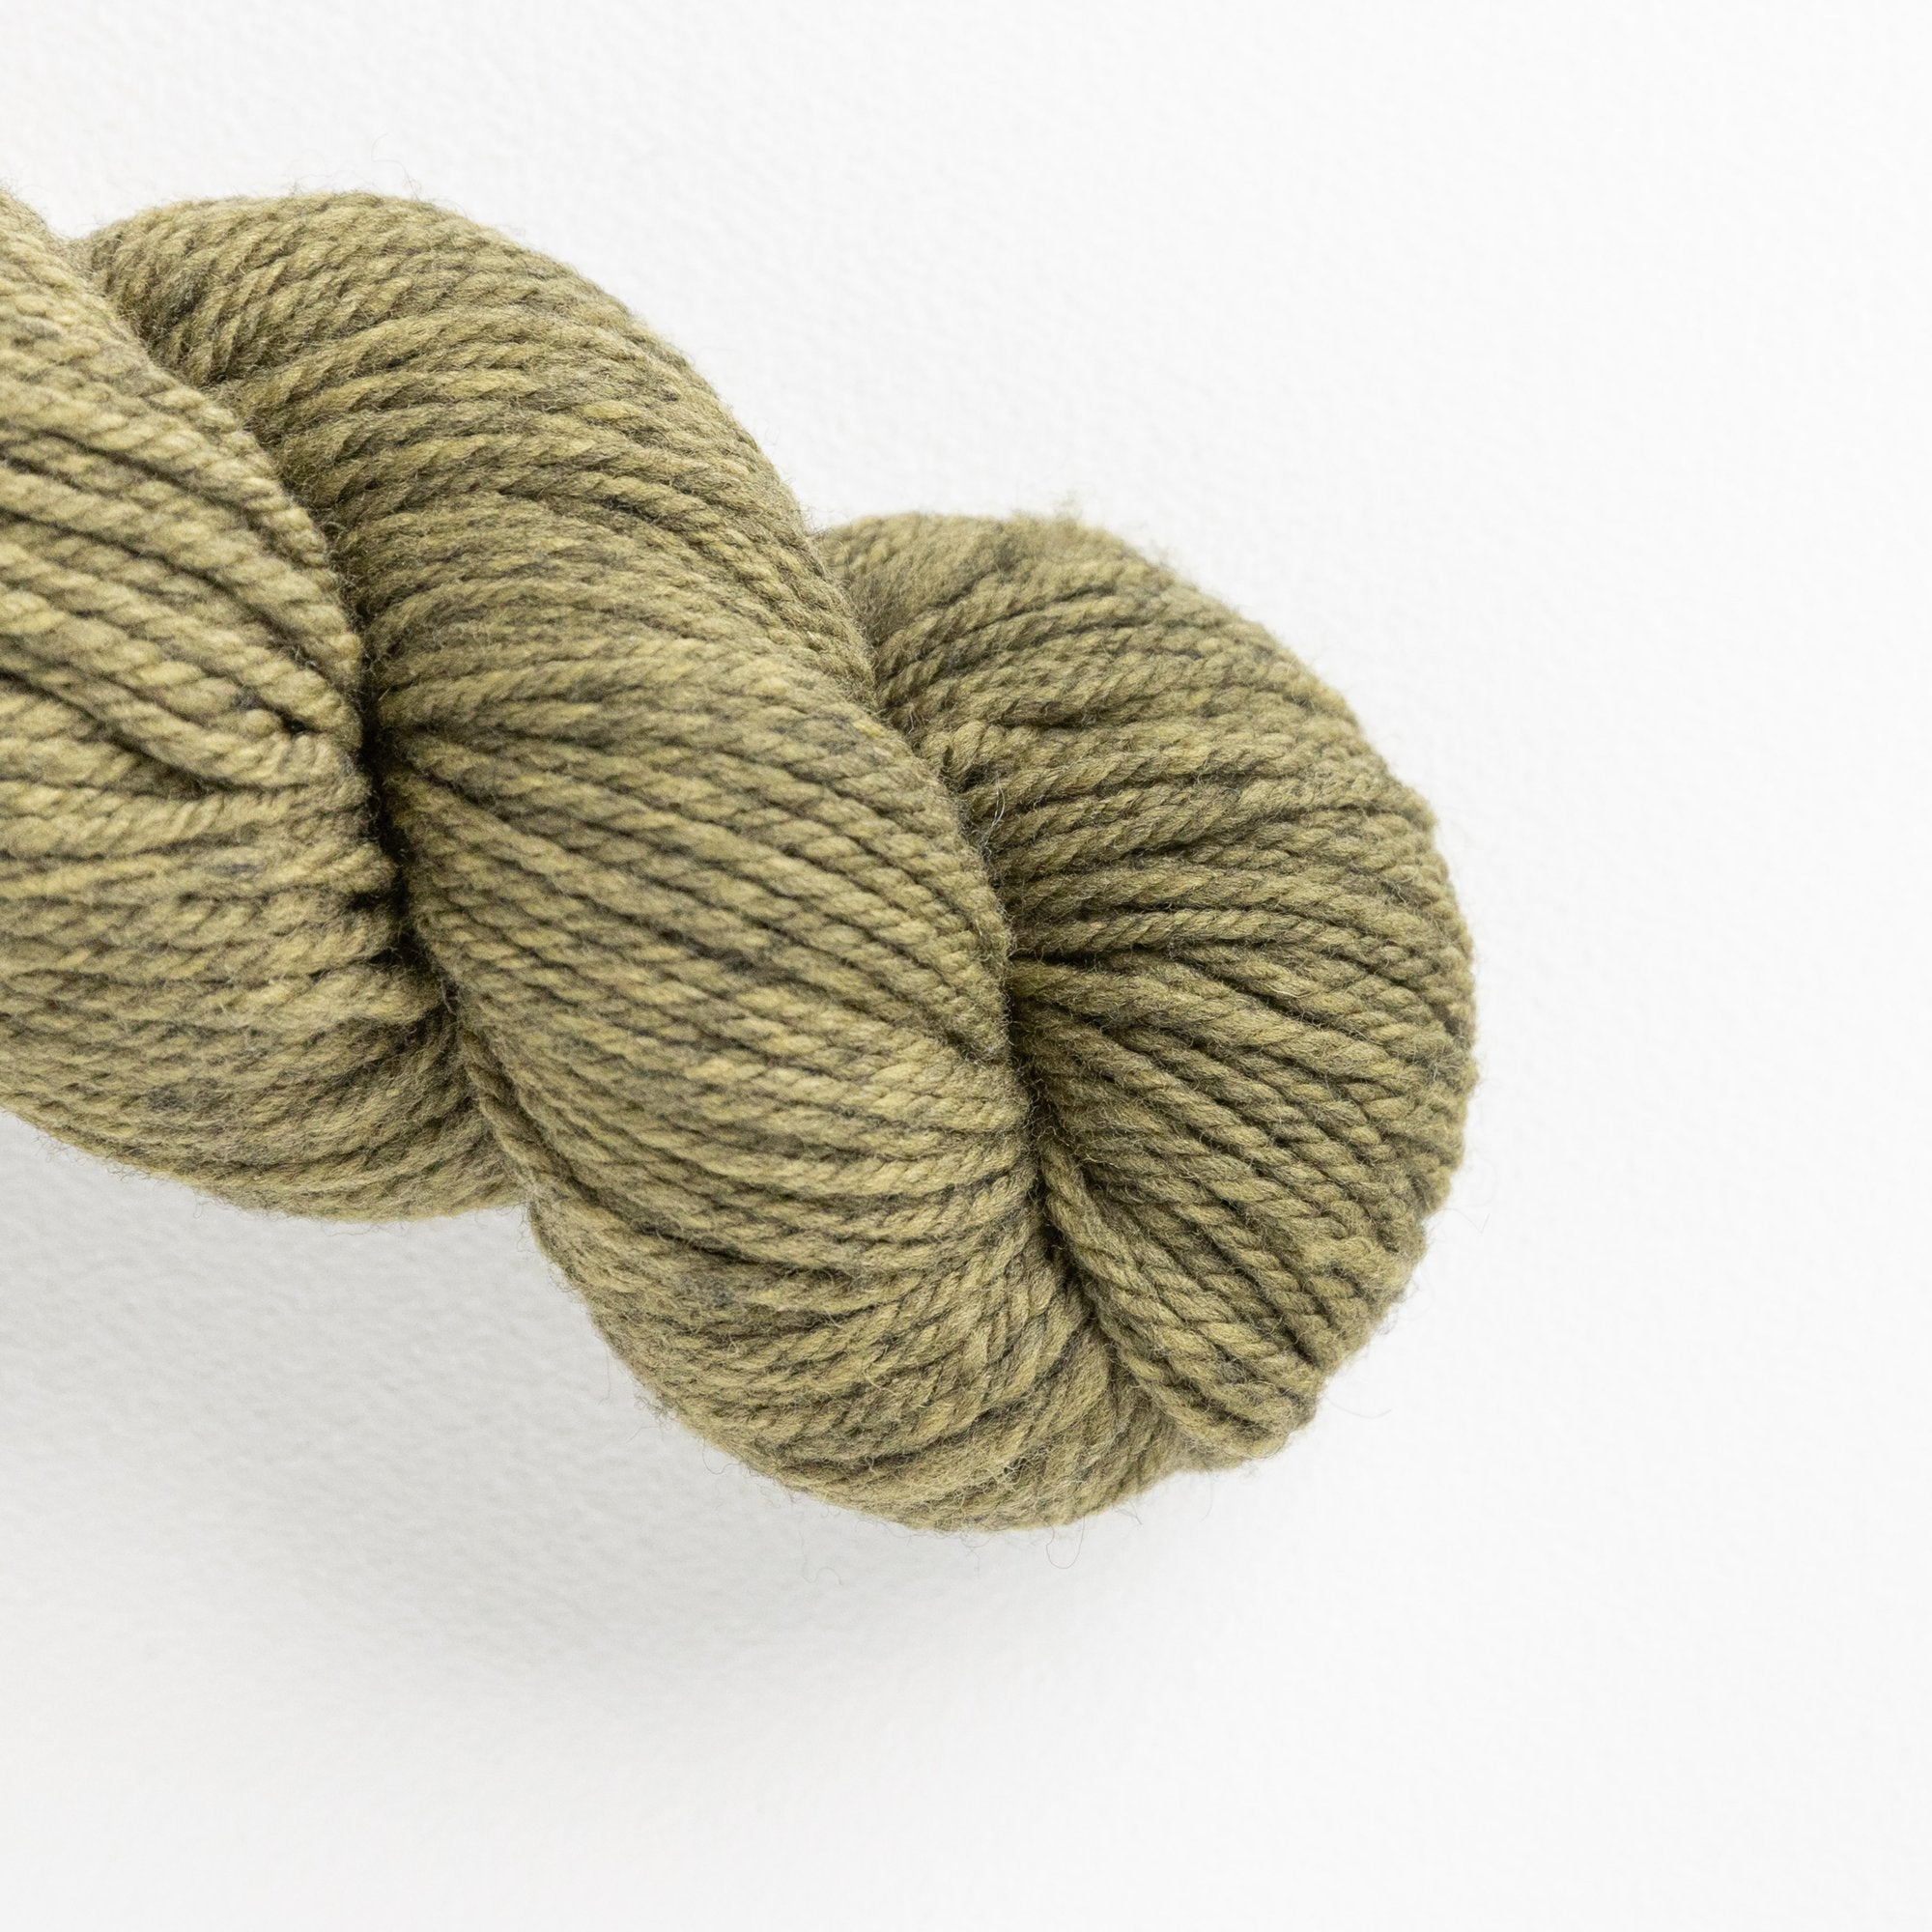 SALE - Stone Wool - Corriedale - 30% off